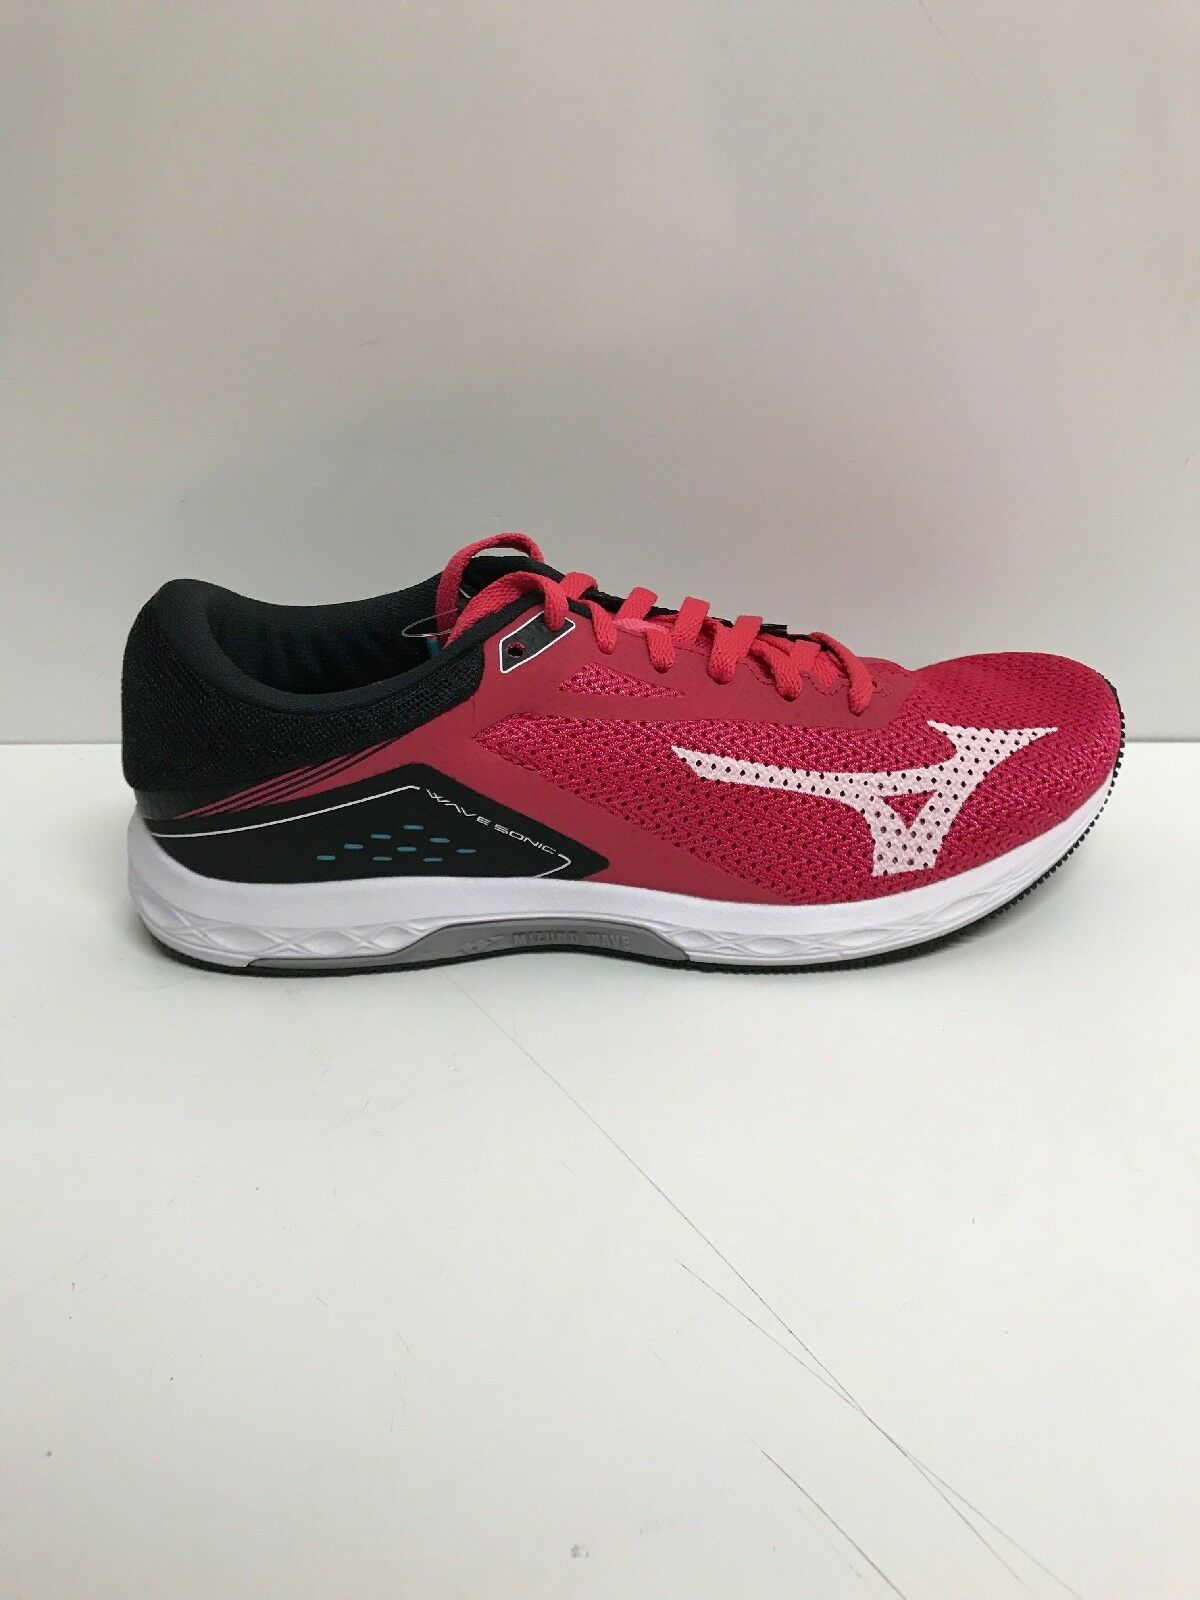 New Women's Mizuno Wave Sonic Pink Black Trim Running shoes shoes shoes Size 8 EU 38.5 2f9058